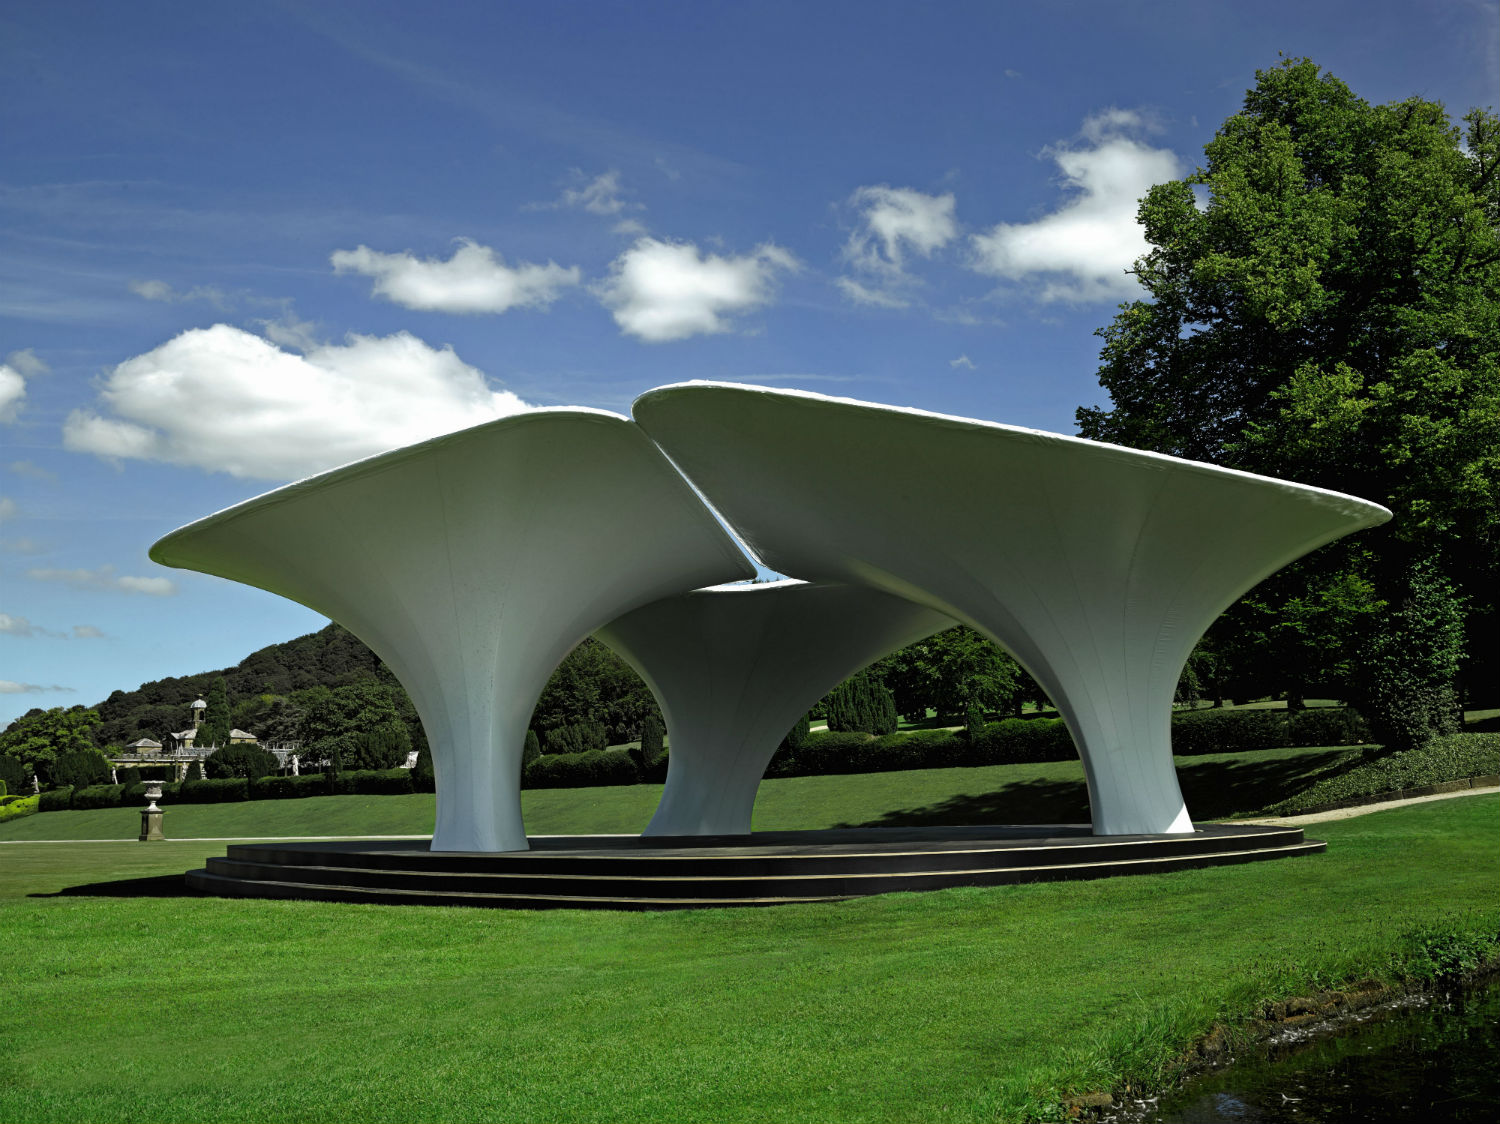 zaha hadid 39 s 2007 serpentine pavilion at the chatsworth house. Black Bedroom Furniture Sets. Home Design Ideas